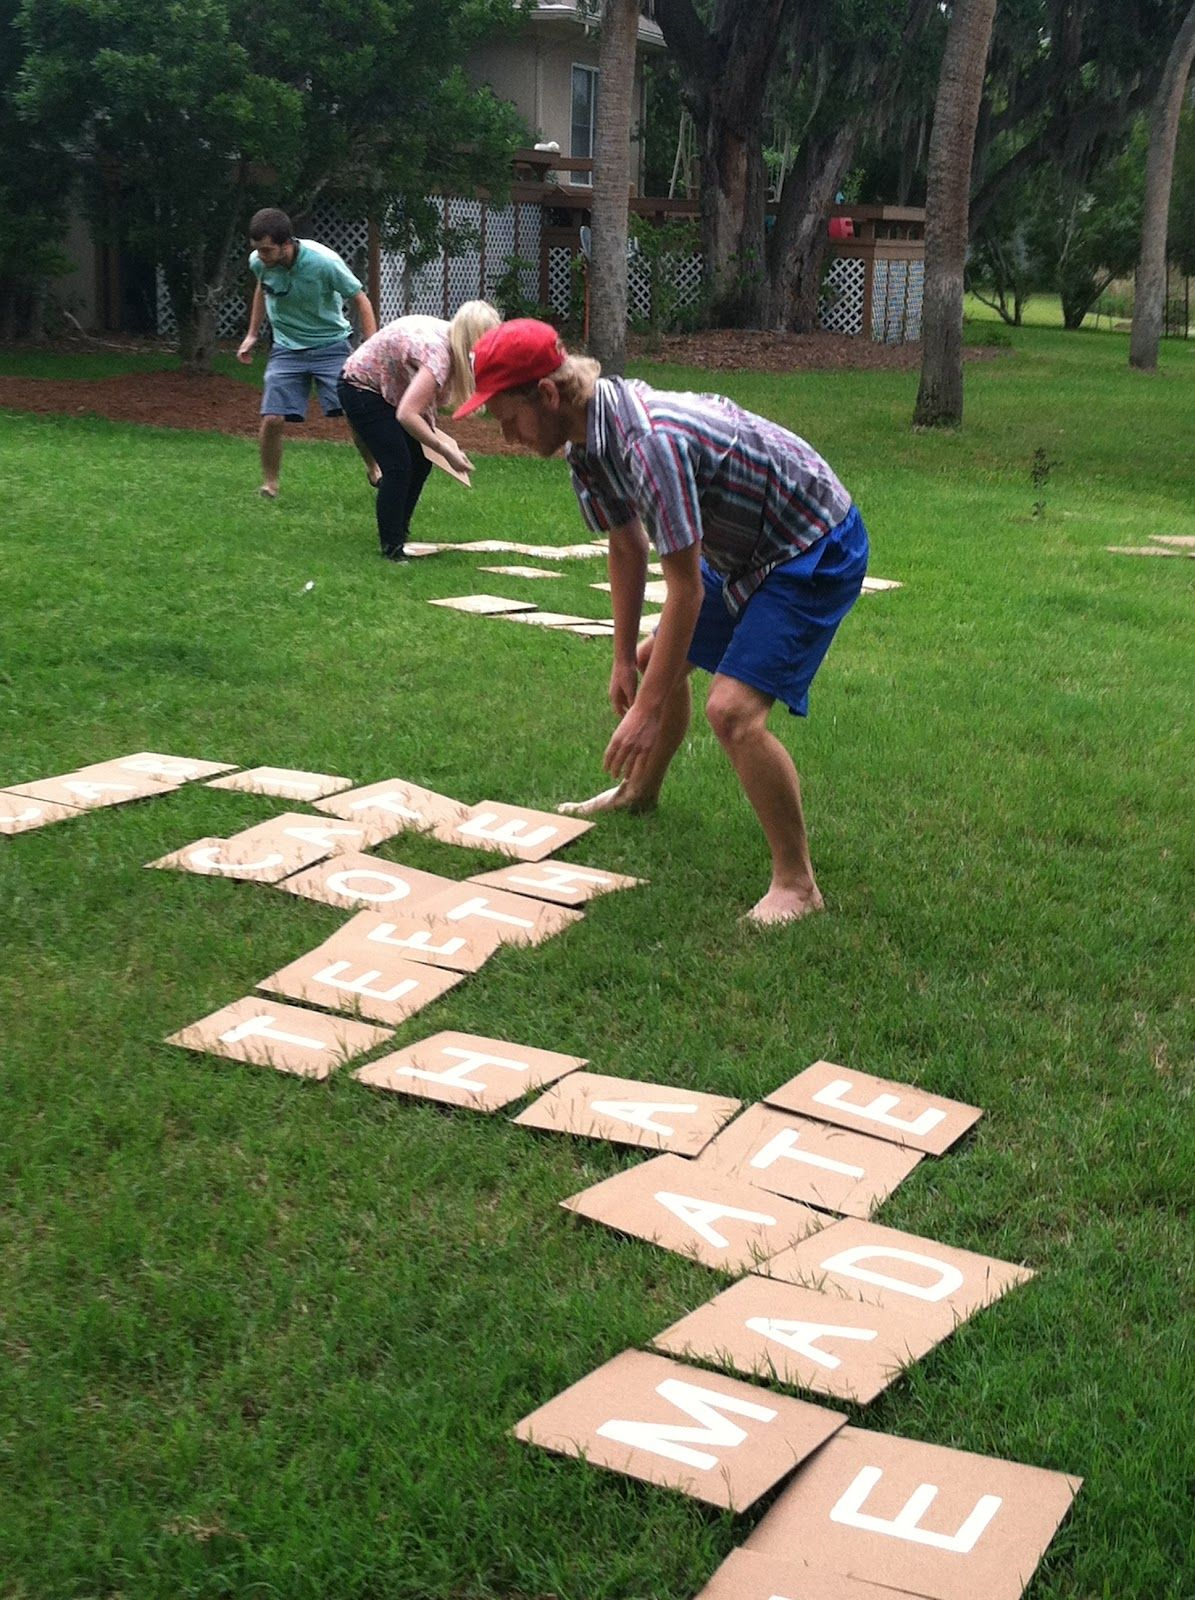 Backyard Scrabble There Are 144 Tiles You Will Need 2 J K Q X Z 3 B C F H M P V W Y 4 G 5 L 6 D S